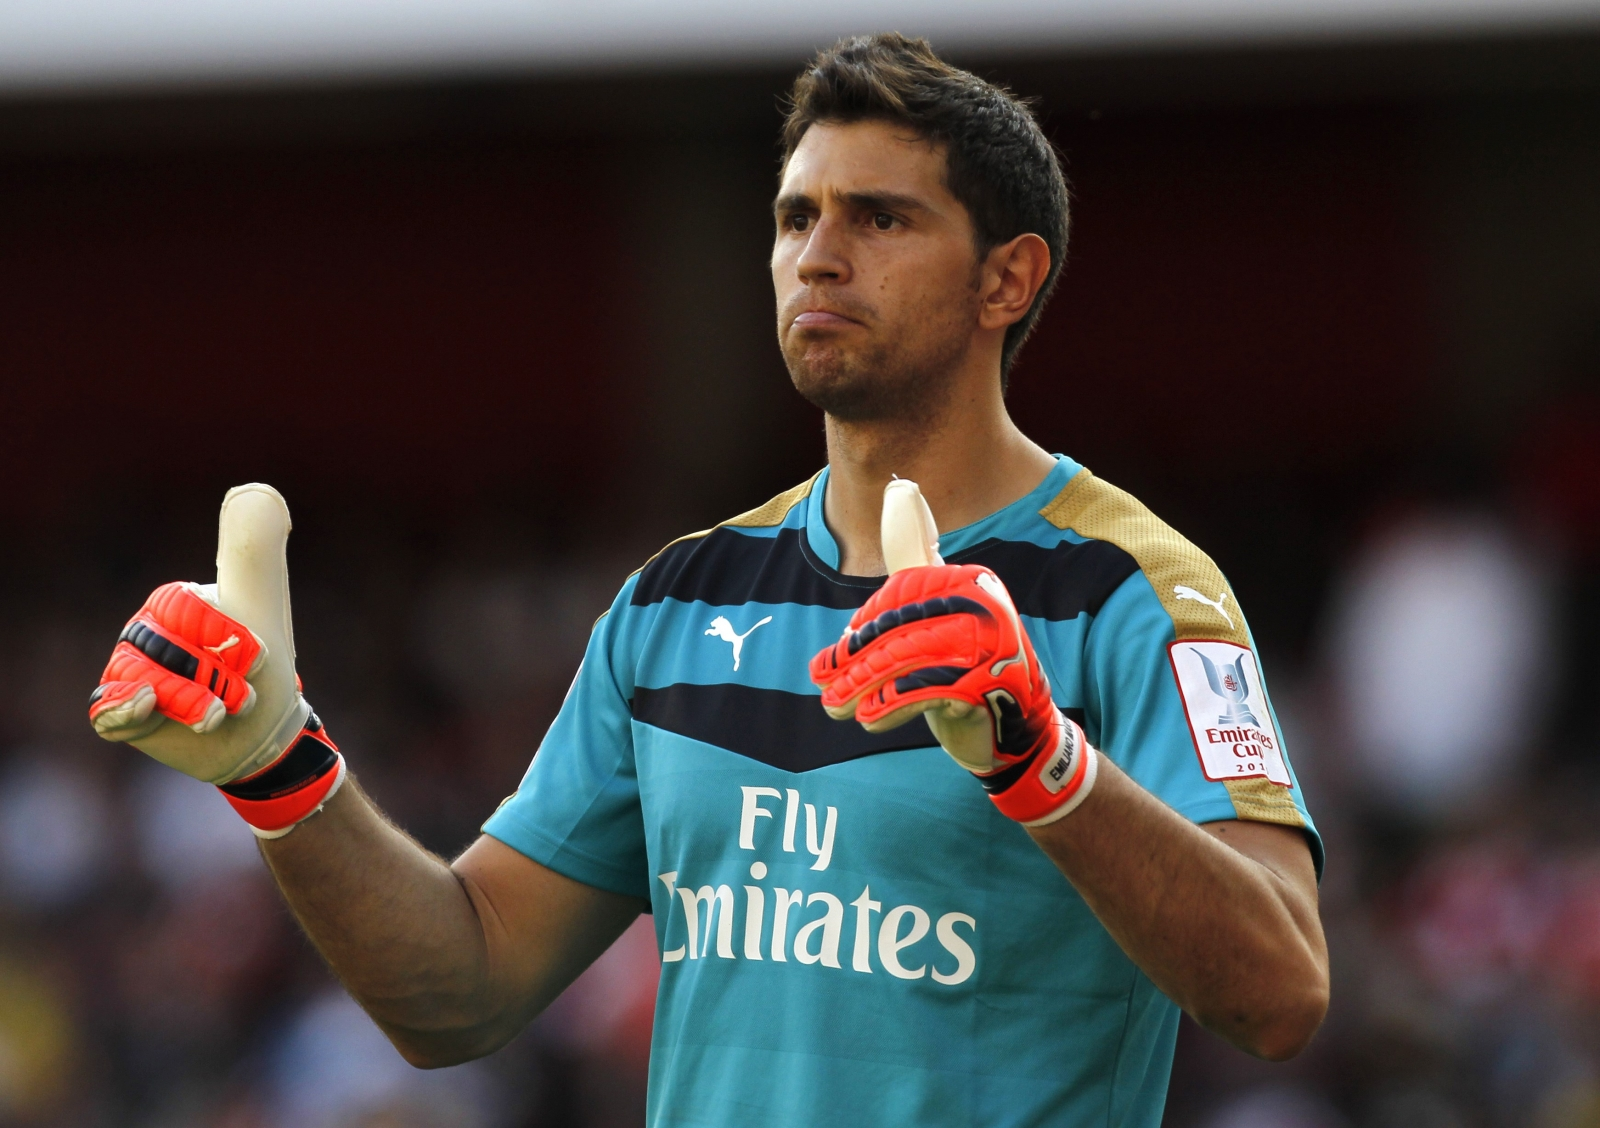 Emiliano Martínez Wallpaper: Arsenal's Emiliano Martinez Discusses Offers To Leave